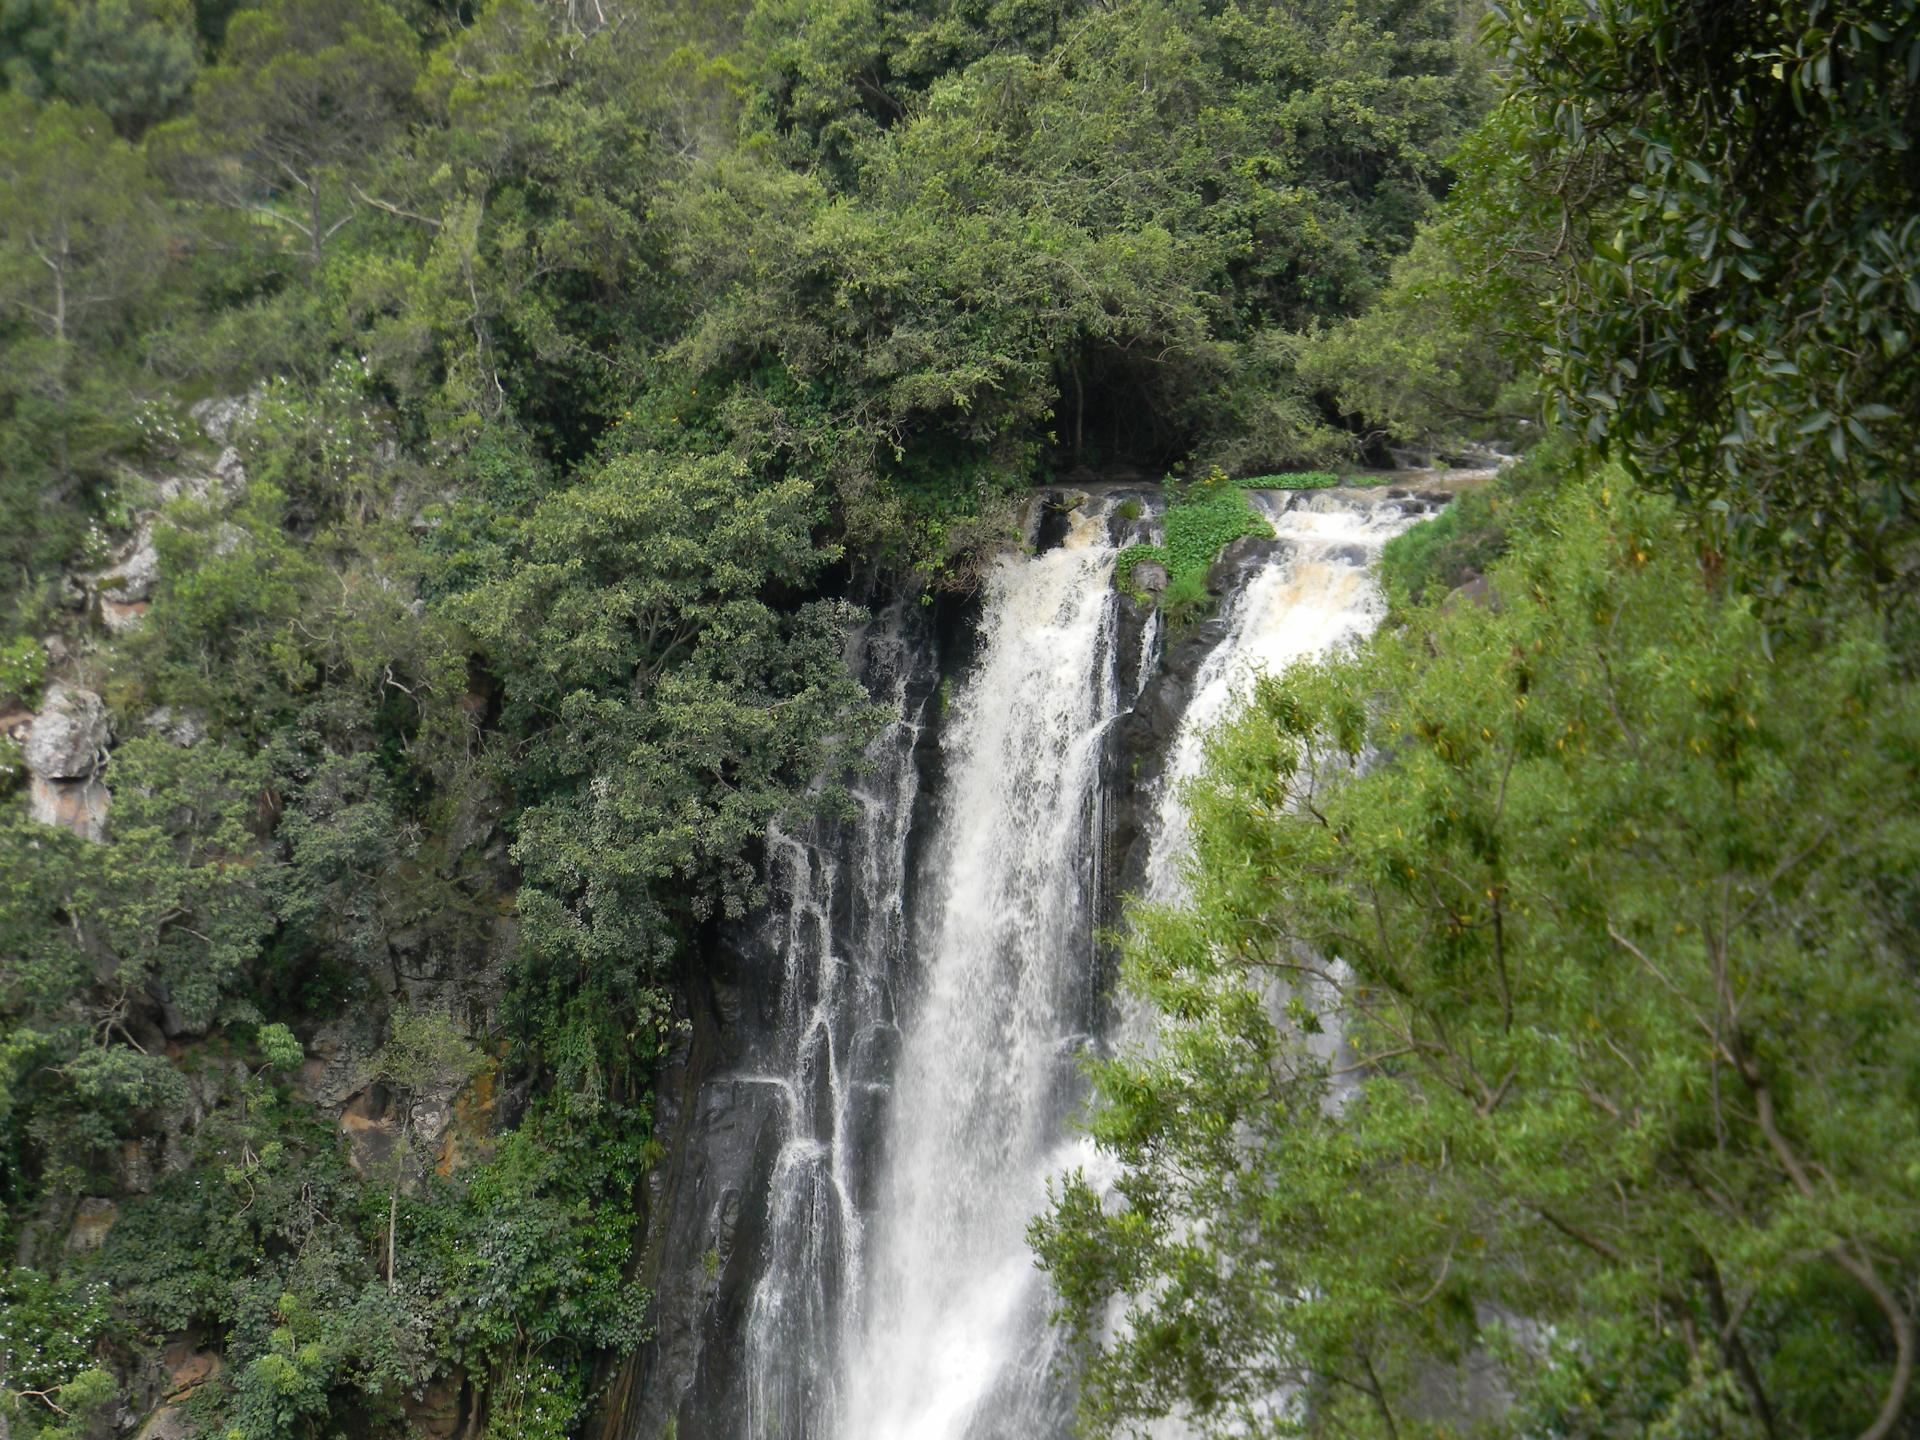 Thompson Falls Nyahururu YHA Kenya Travel/ Kenya Adventure tours safaris